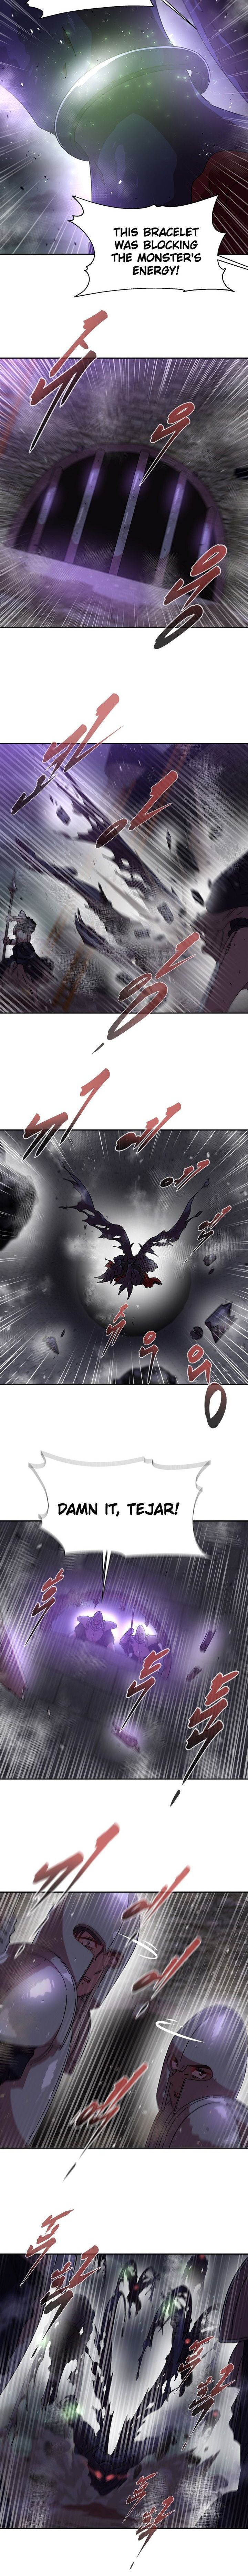 i_was_born_as_the_demon_lords_daughter_48_5